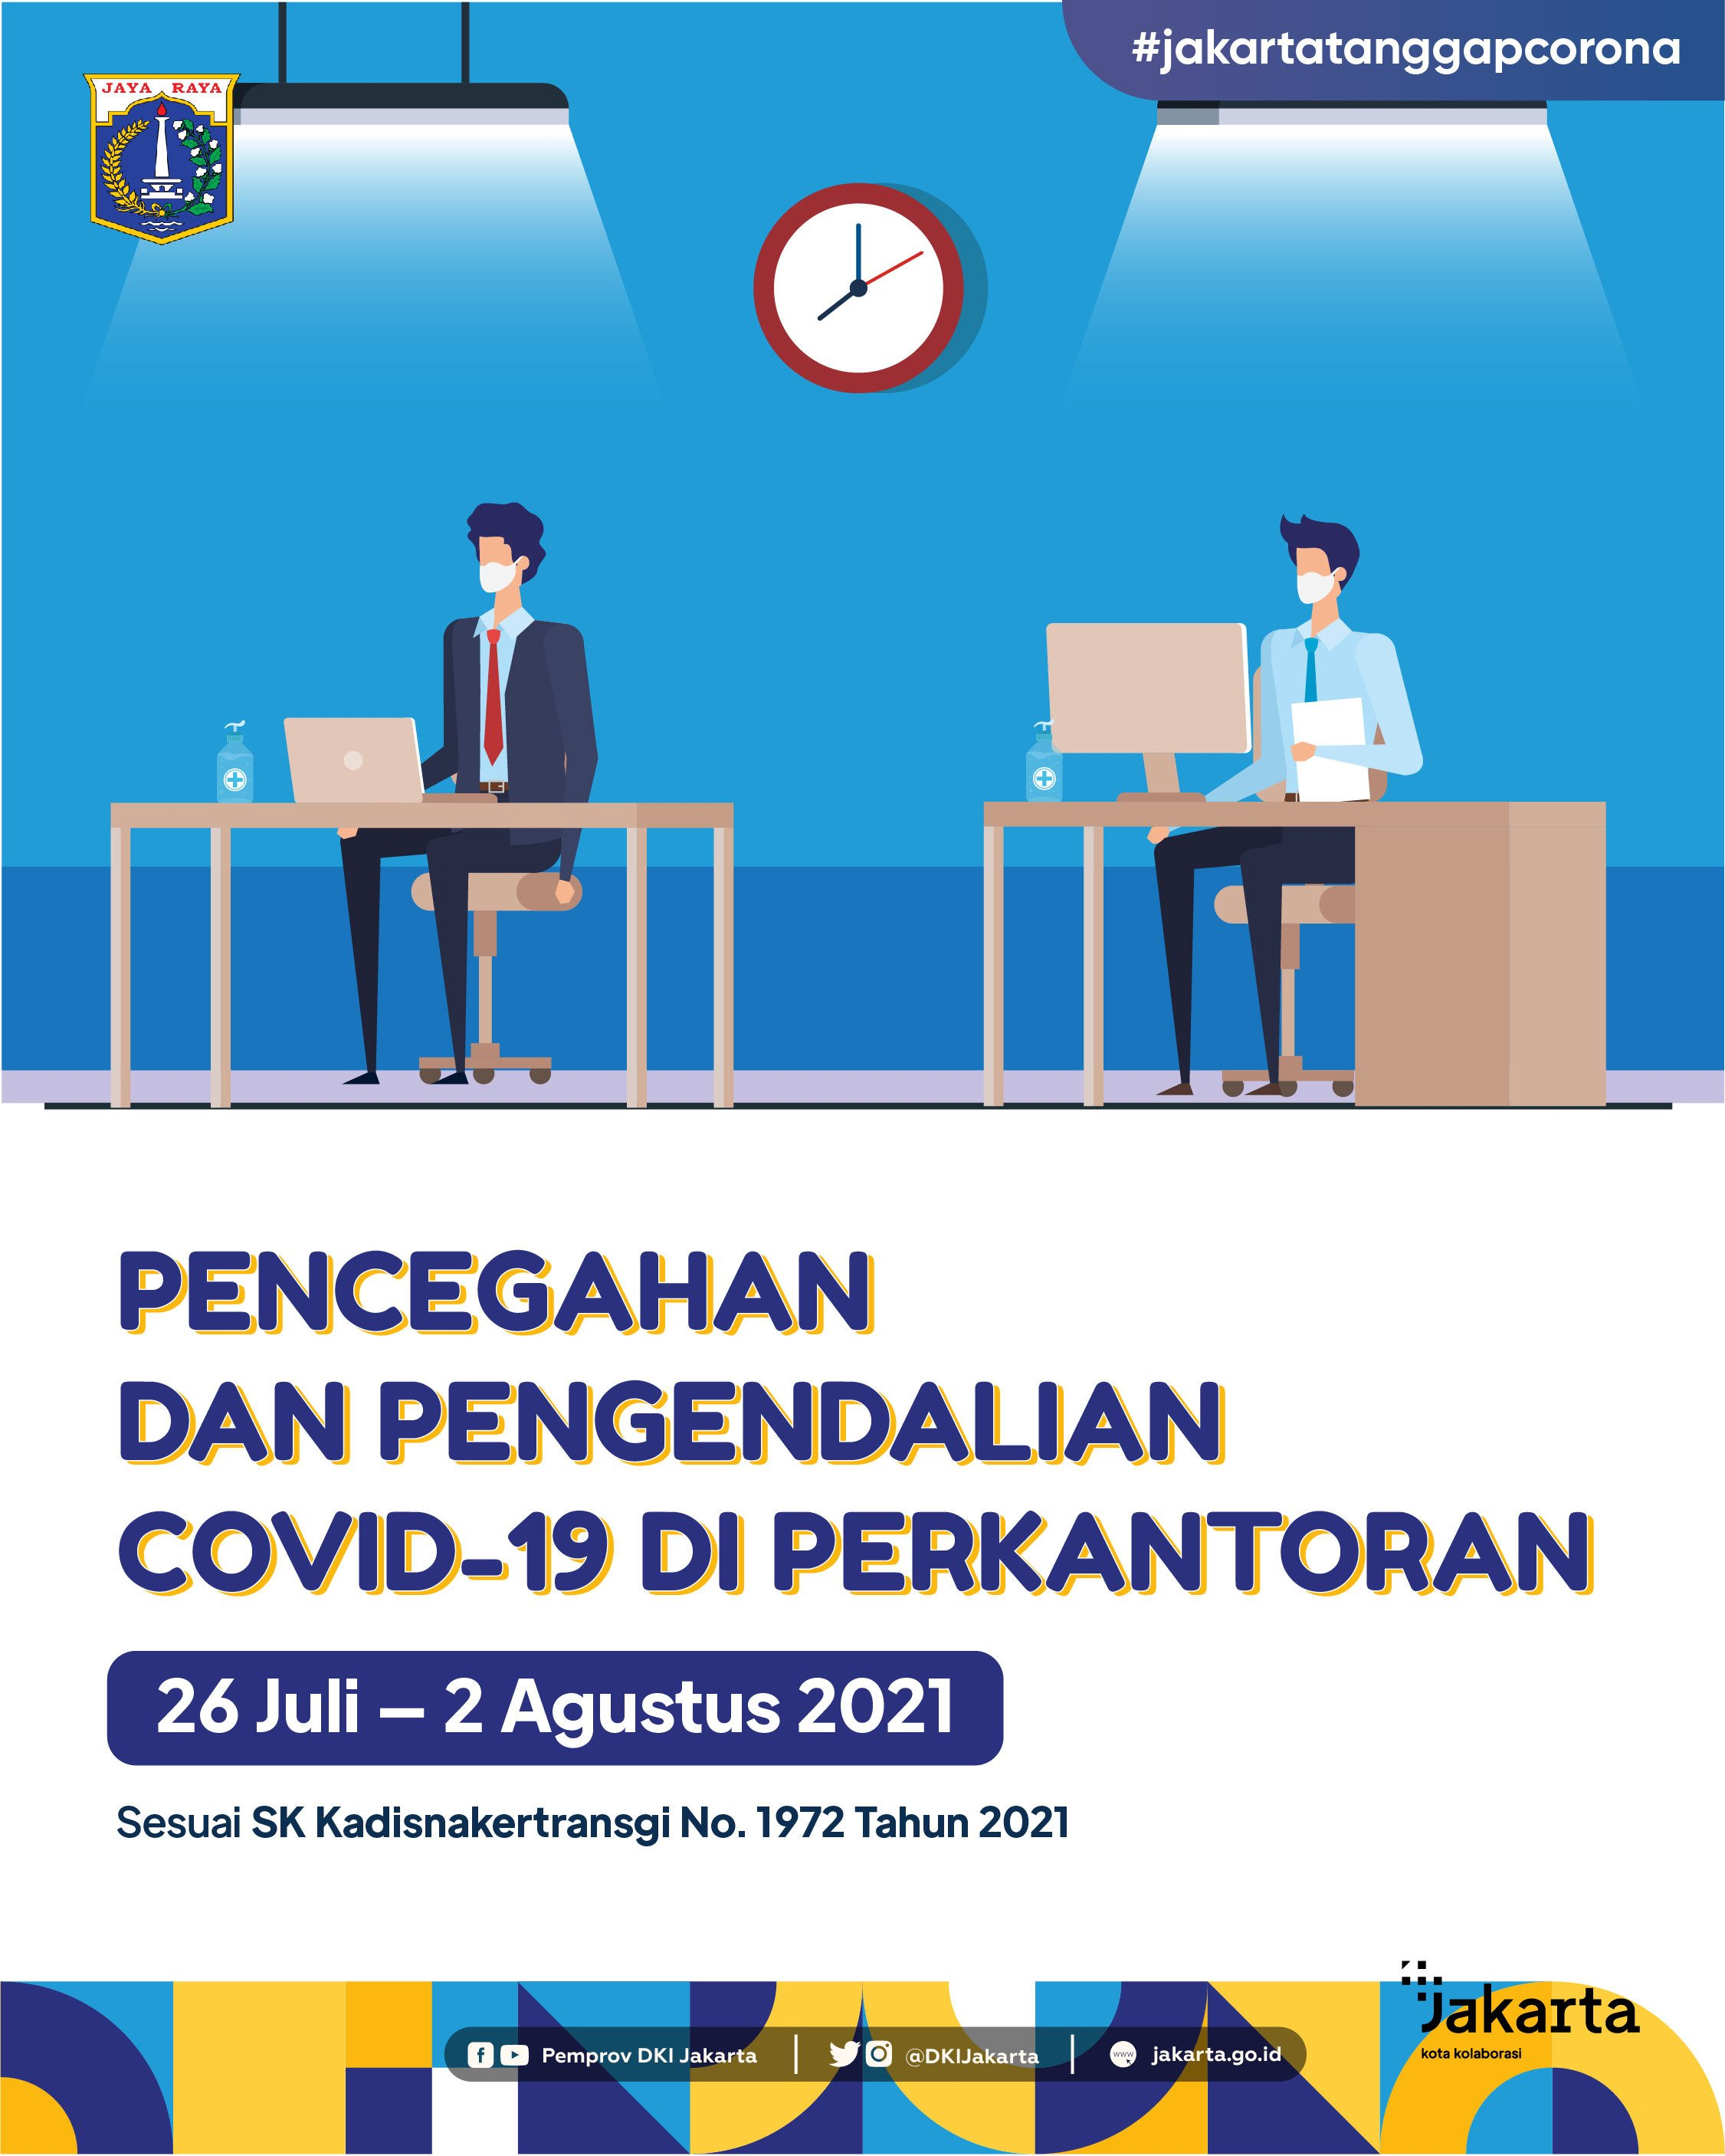 Prevention and Control of Covid-19 in the Office